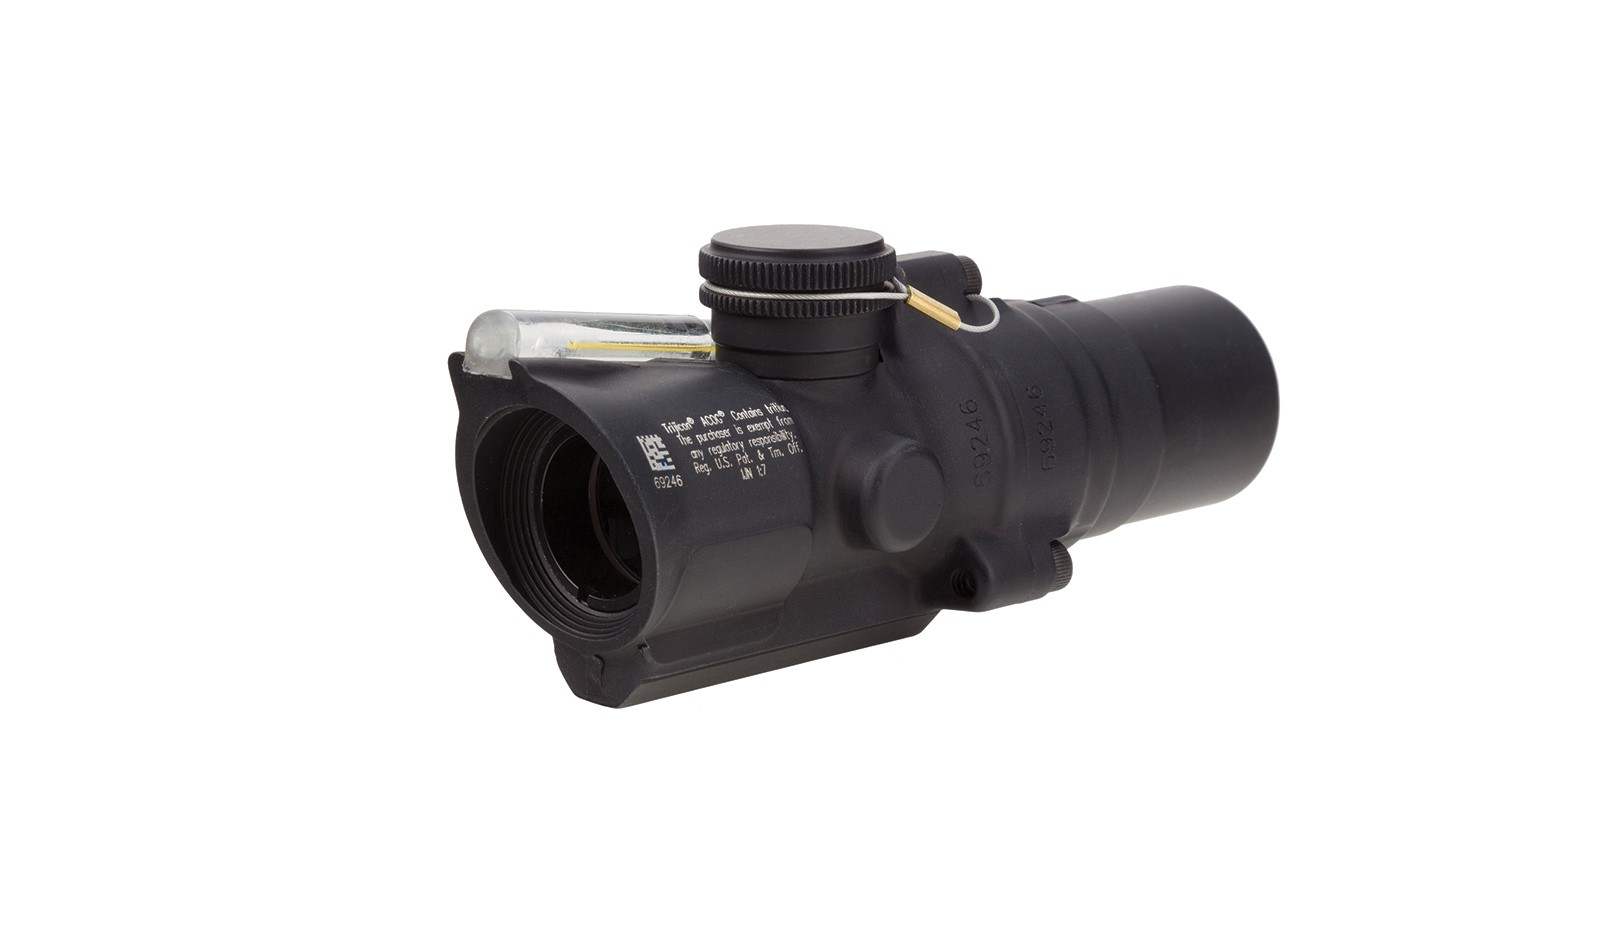 Trijicon ACOG® 1.5x16s BAC Riflescope